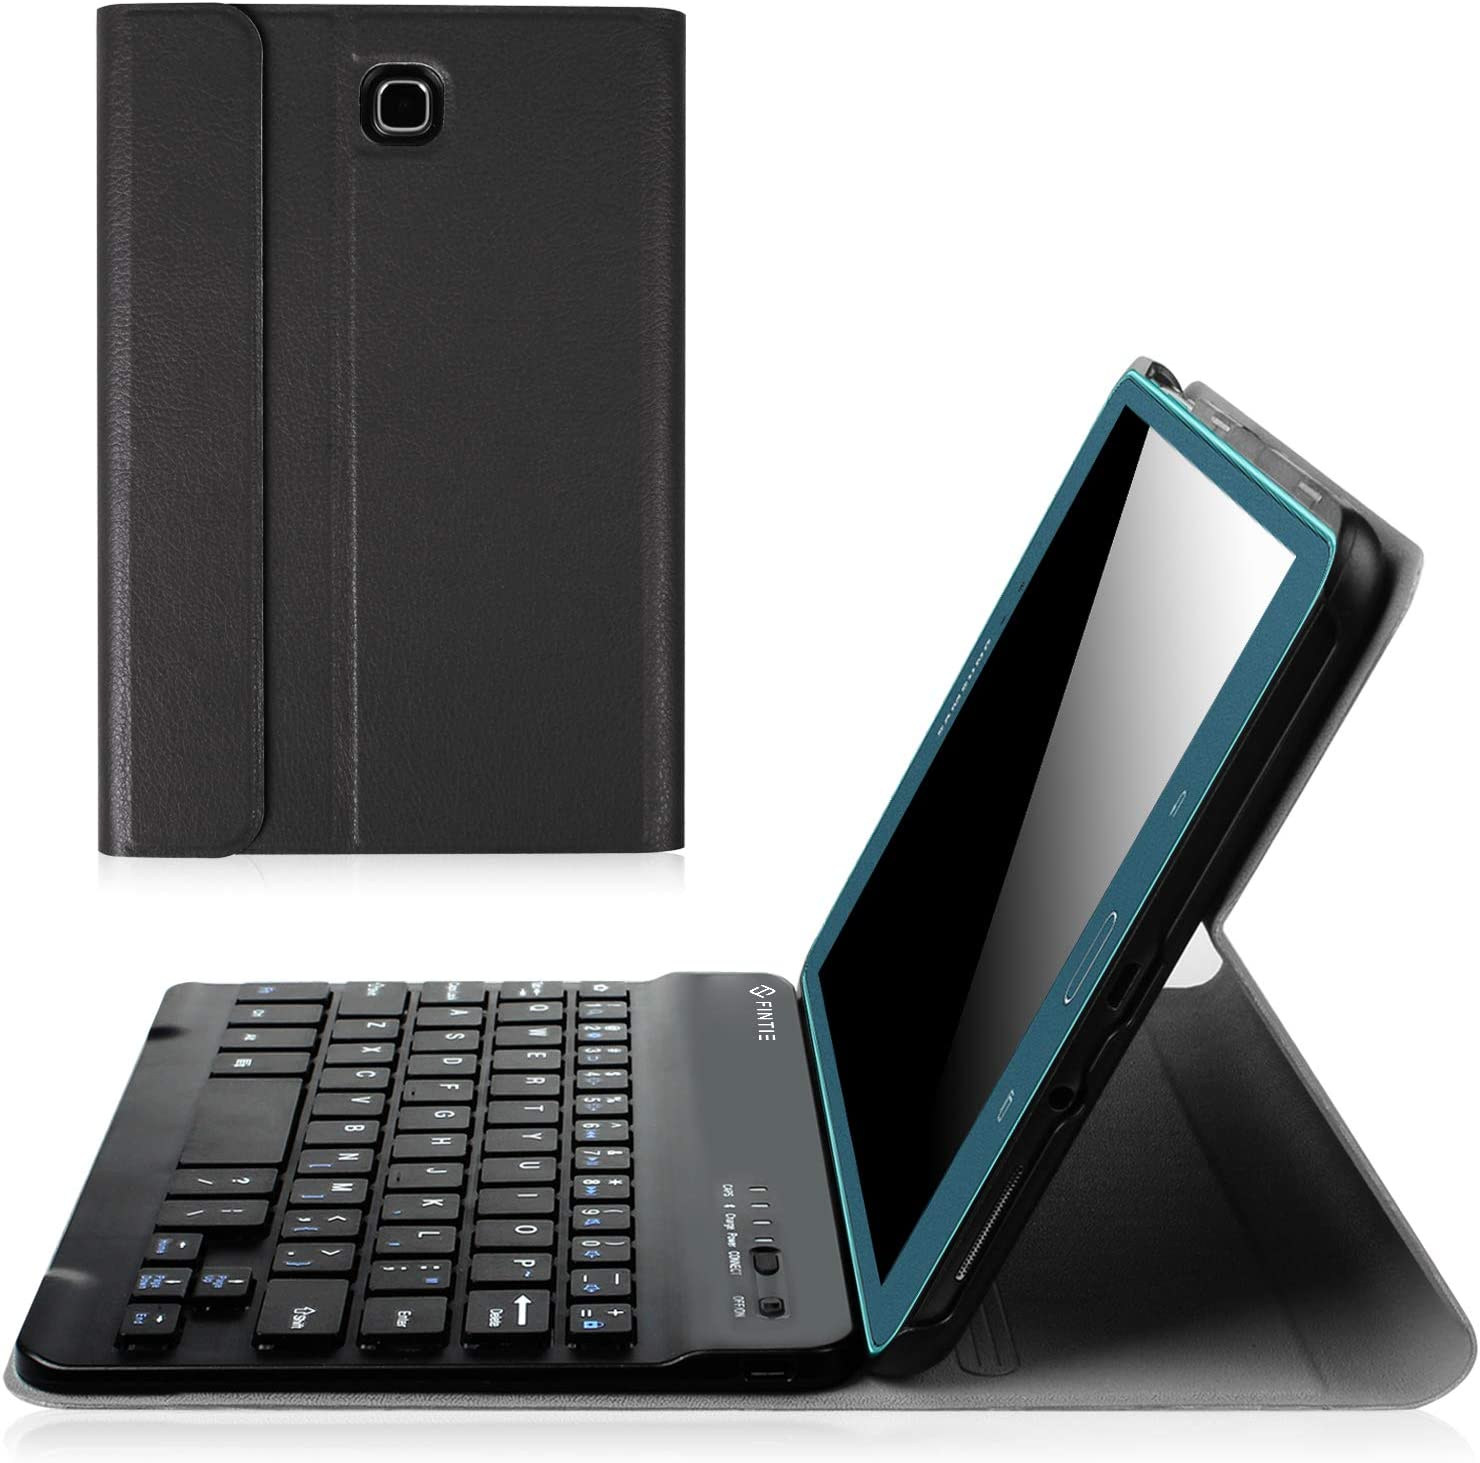 Fintie Keyboard Case for Samsung Galaxy Tab A 8.0 (2015), Slim Shell Stand Cover w/Magnetically Detachable Bluetooth Keyboard for Tab A 8.0 SM-T350/P350 2015 (NOT Fit 2017/2018 Version), Black